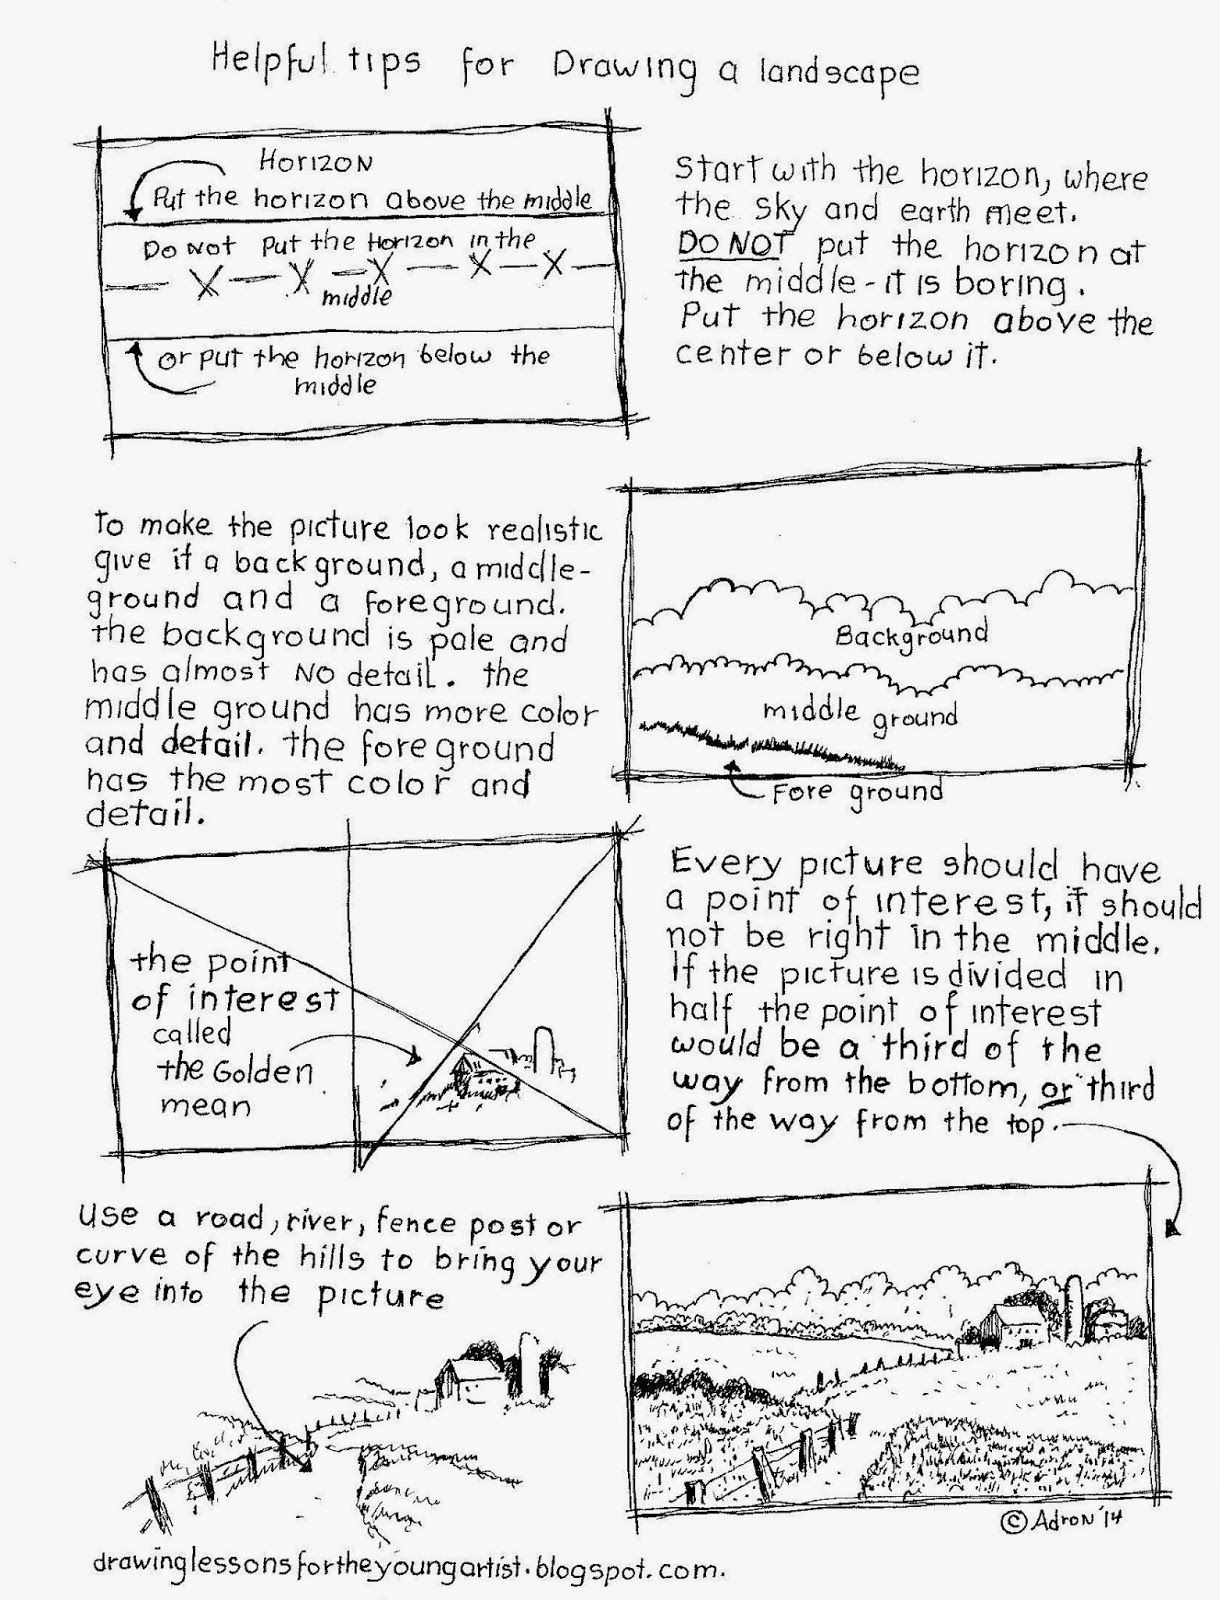 Tips For Drawing A Landscape Worksheet See More At My Blog